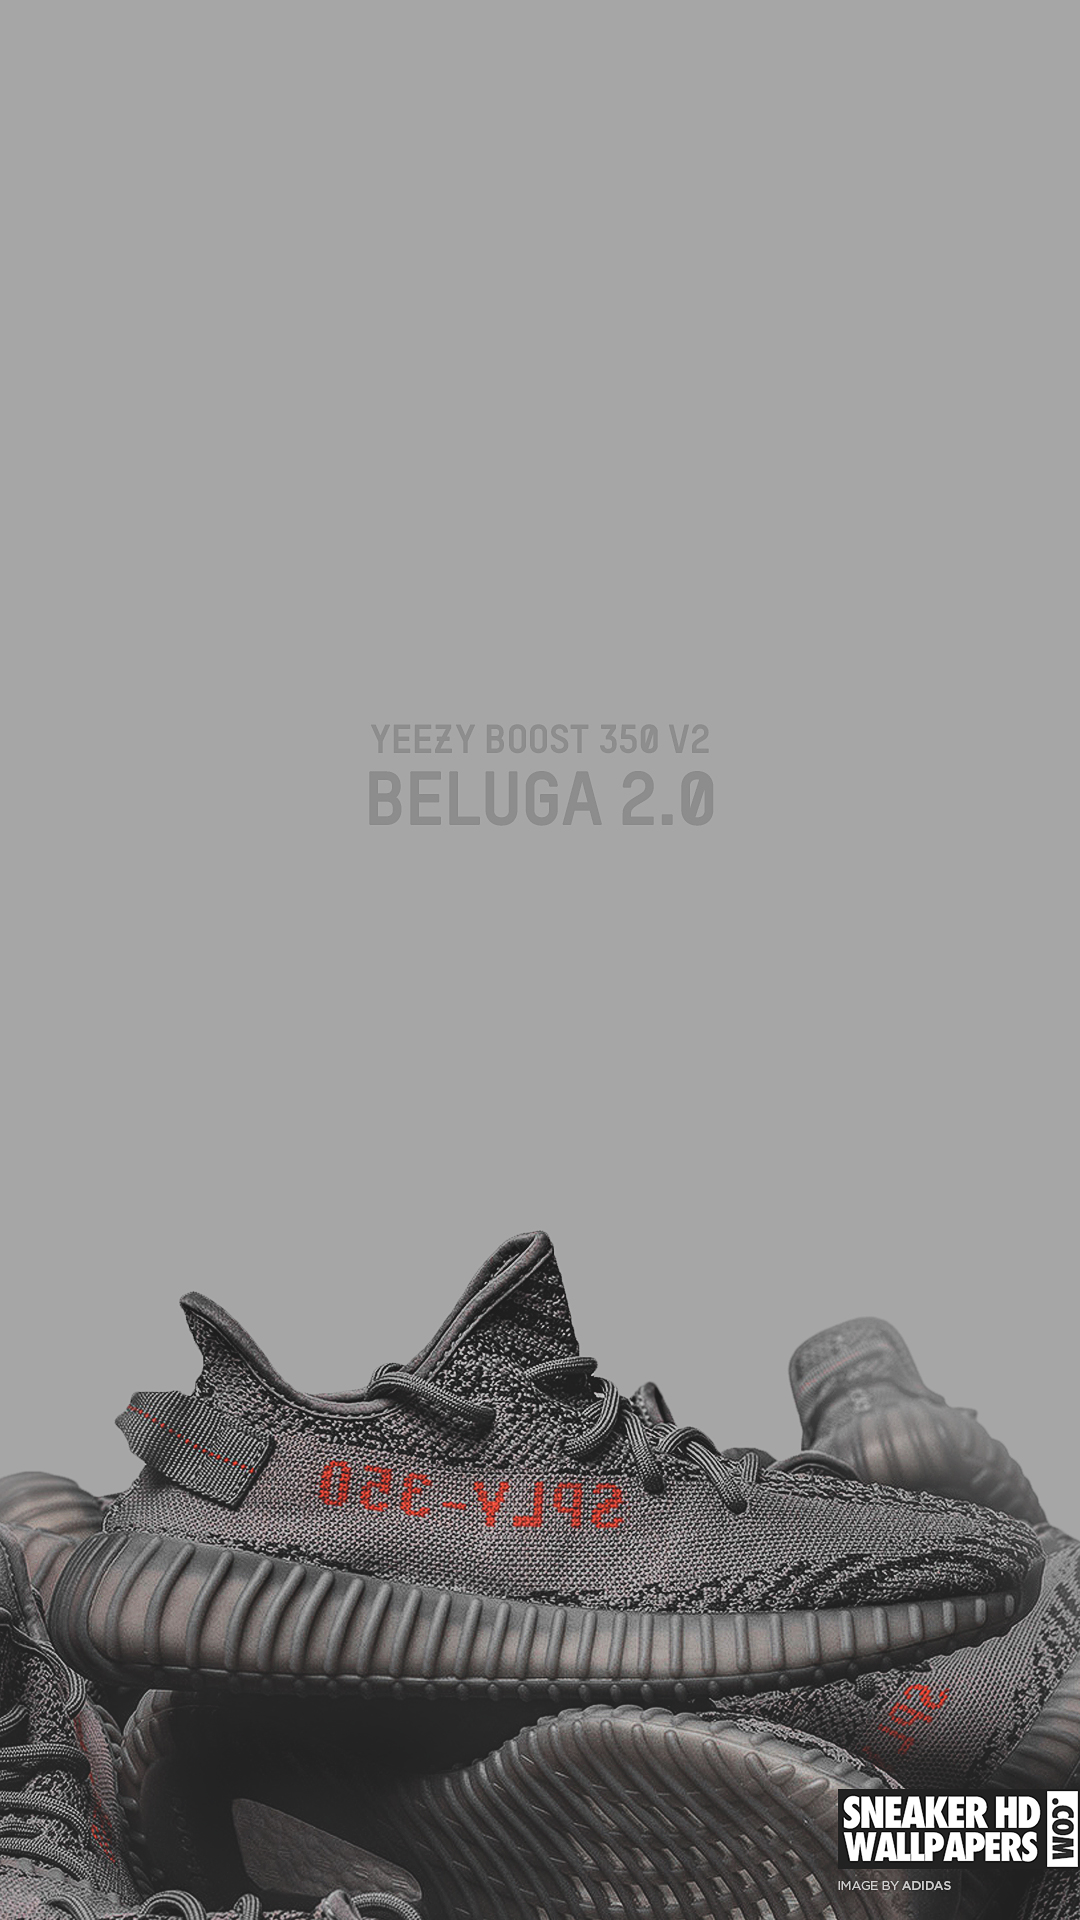 Blog Archive NEW Adidas Yeezy Boost 350